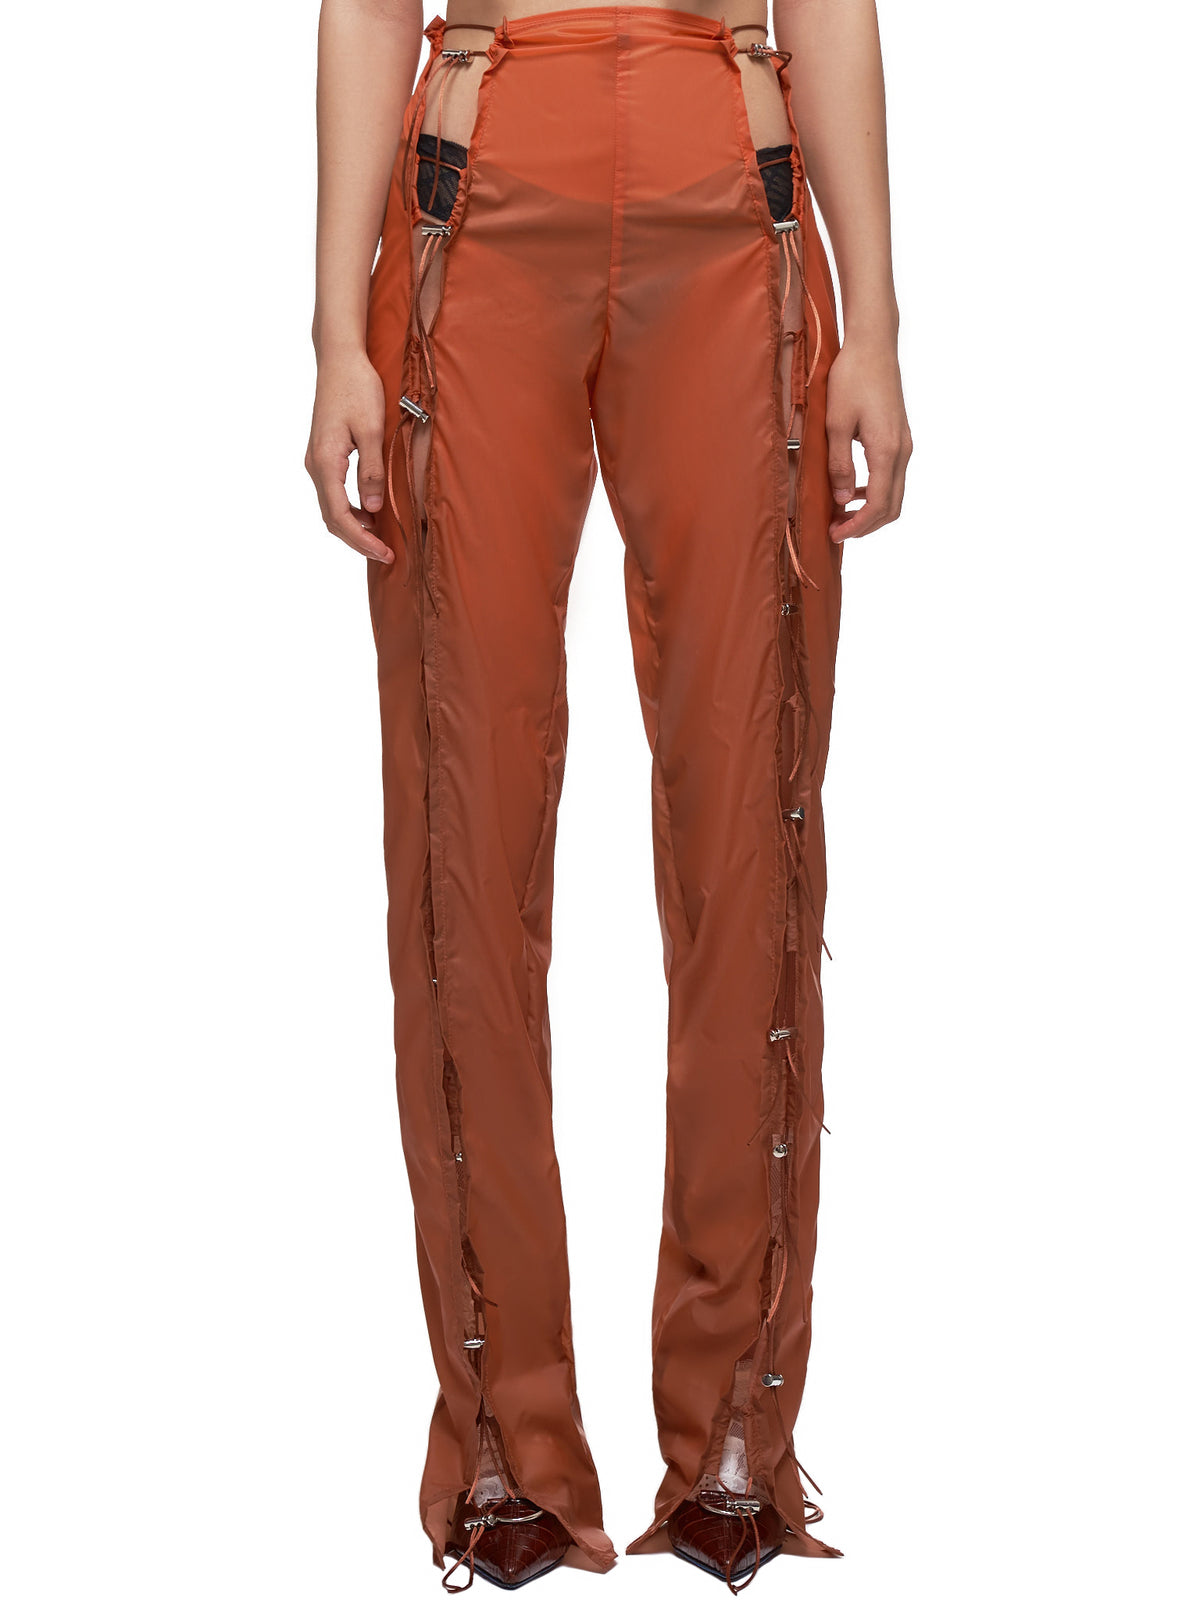 Irkalla Heat Changing Trousers (IRKALLA-HEAT-CHANGING-ORANGE)